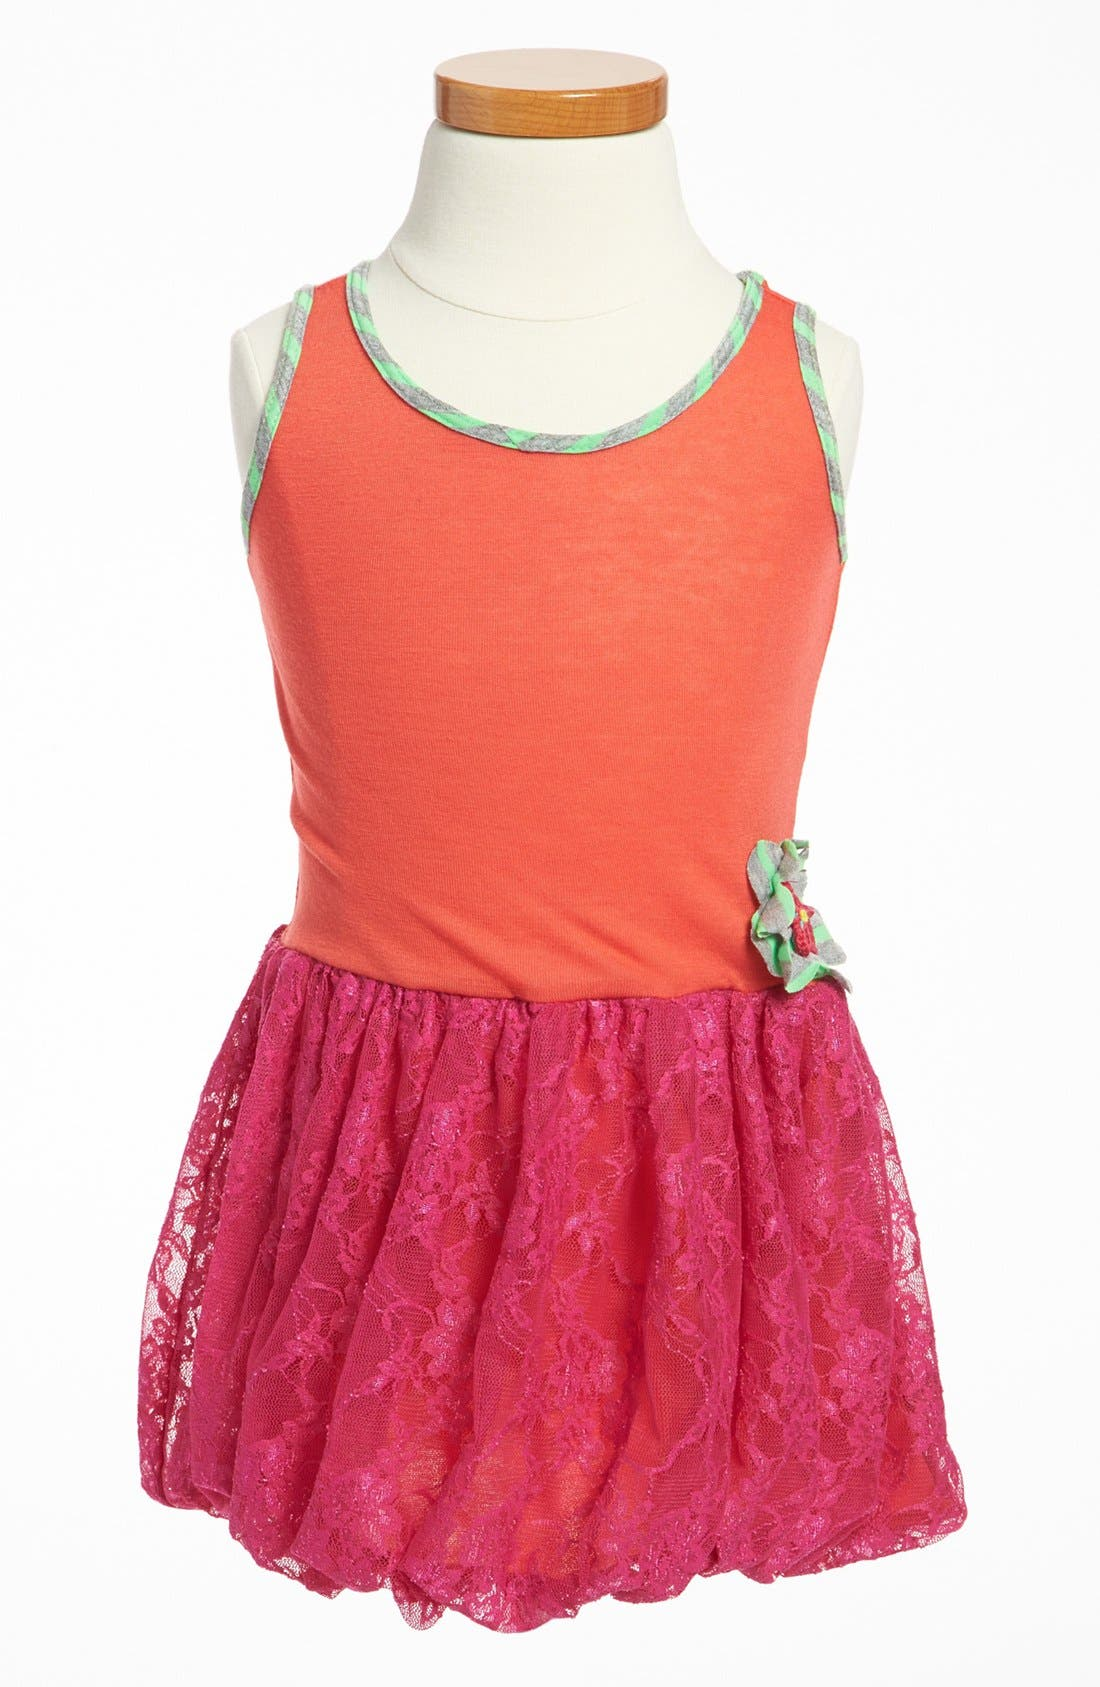 Main Image - Twirls & Twigs Bubble Skirt Dress (Toddler)